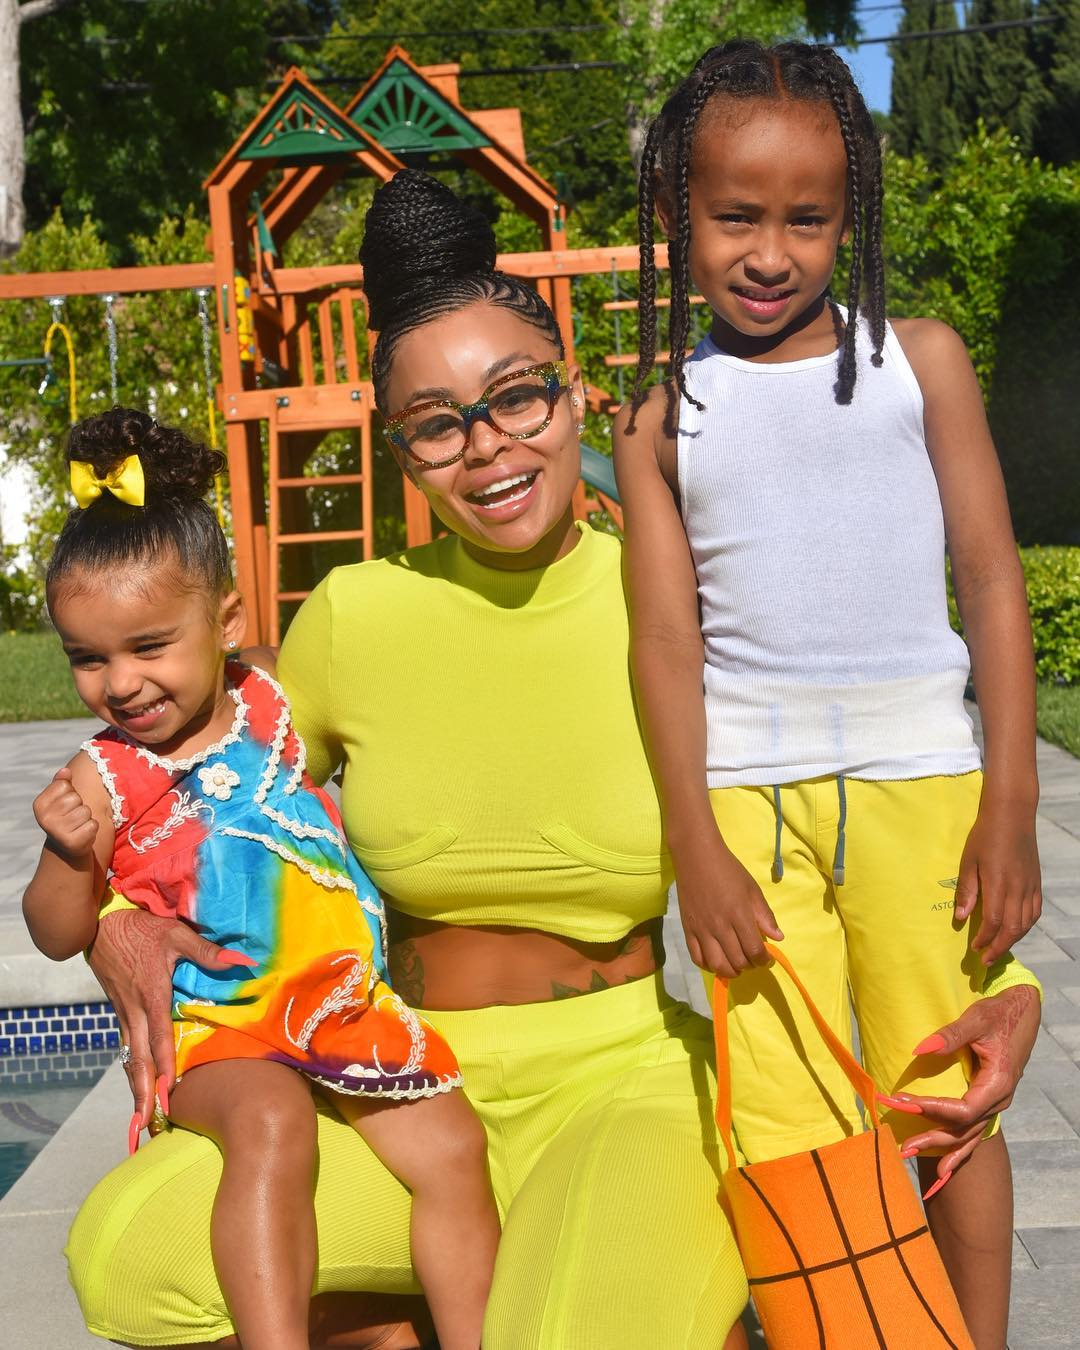 blac-chynas-latest-videos-of-her-kids-dream-and-king-have-fans-in-awe-dream-is-a-true-rock-star-and-king-is-twinning-with-his-dad